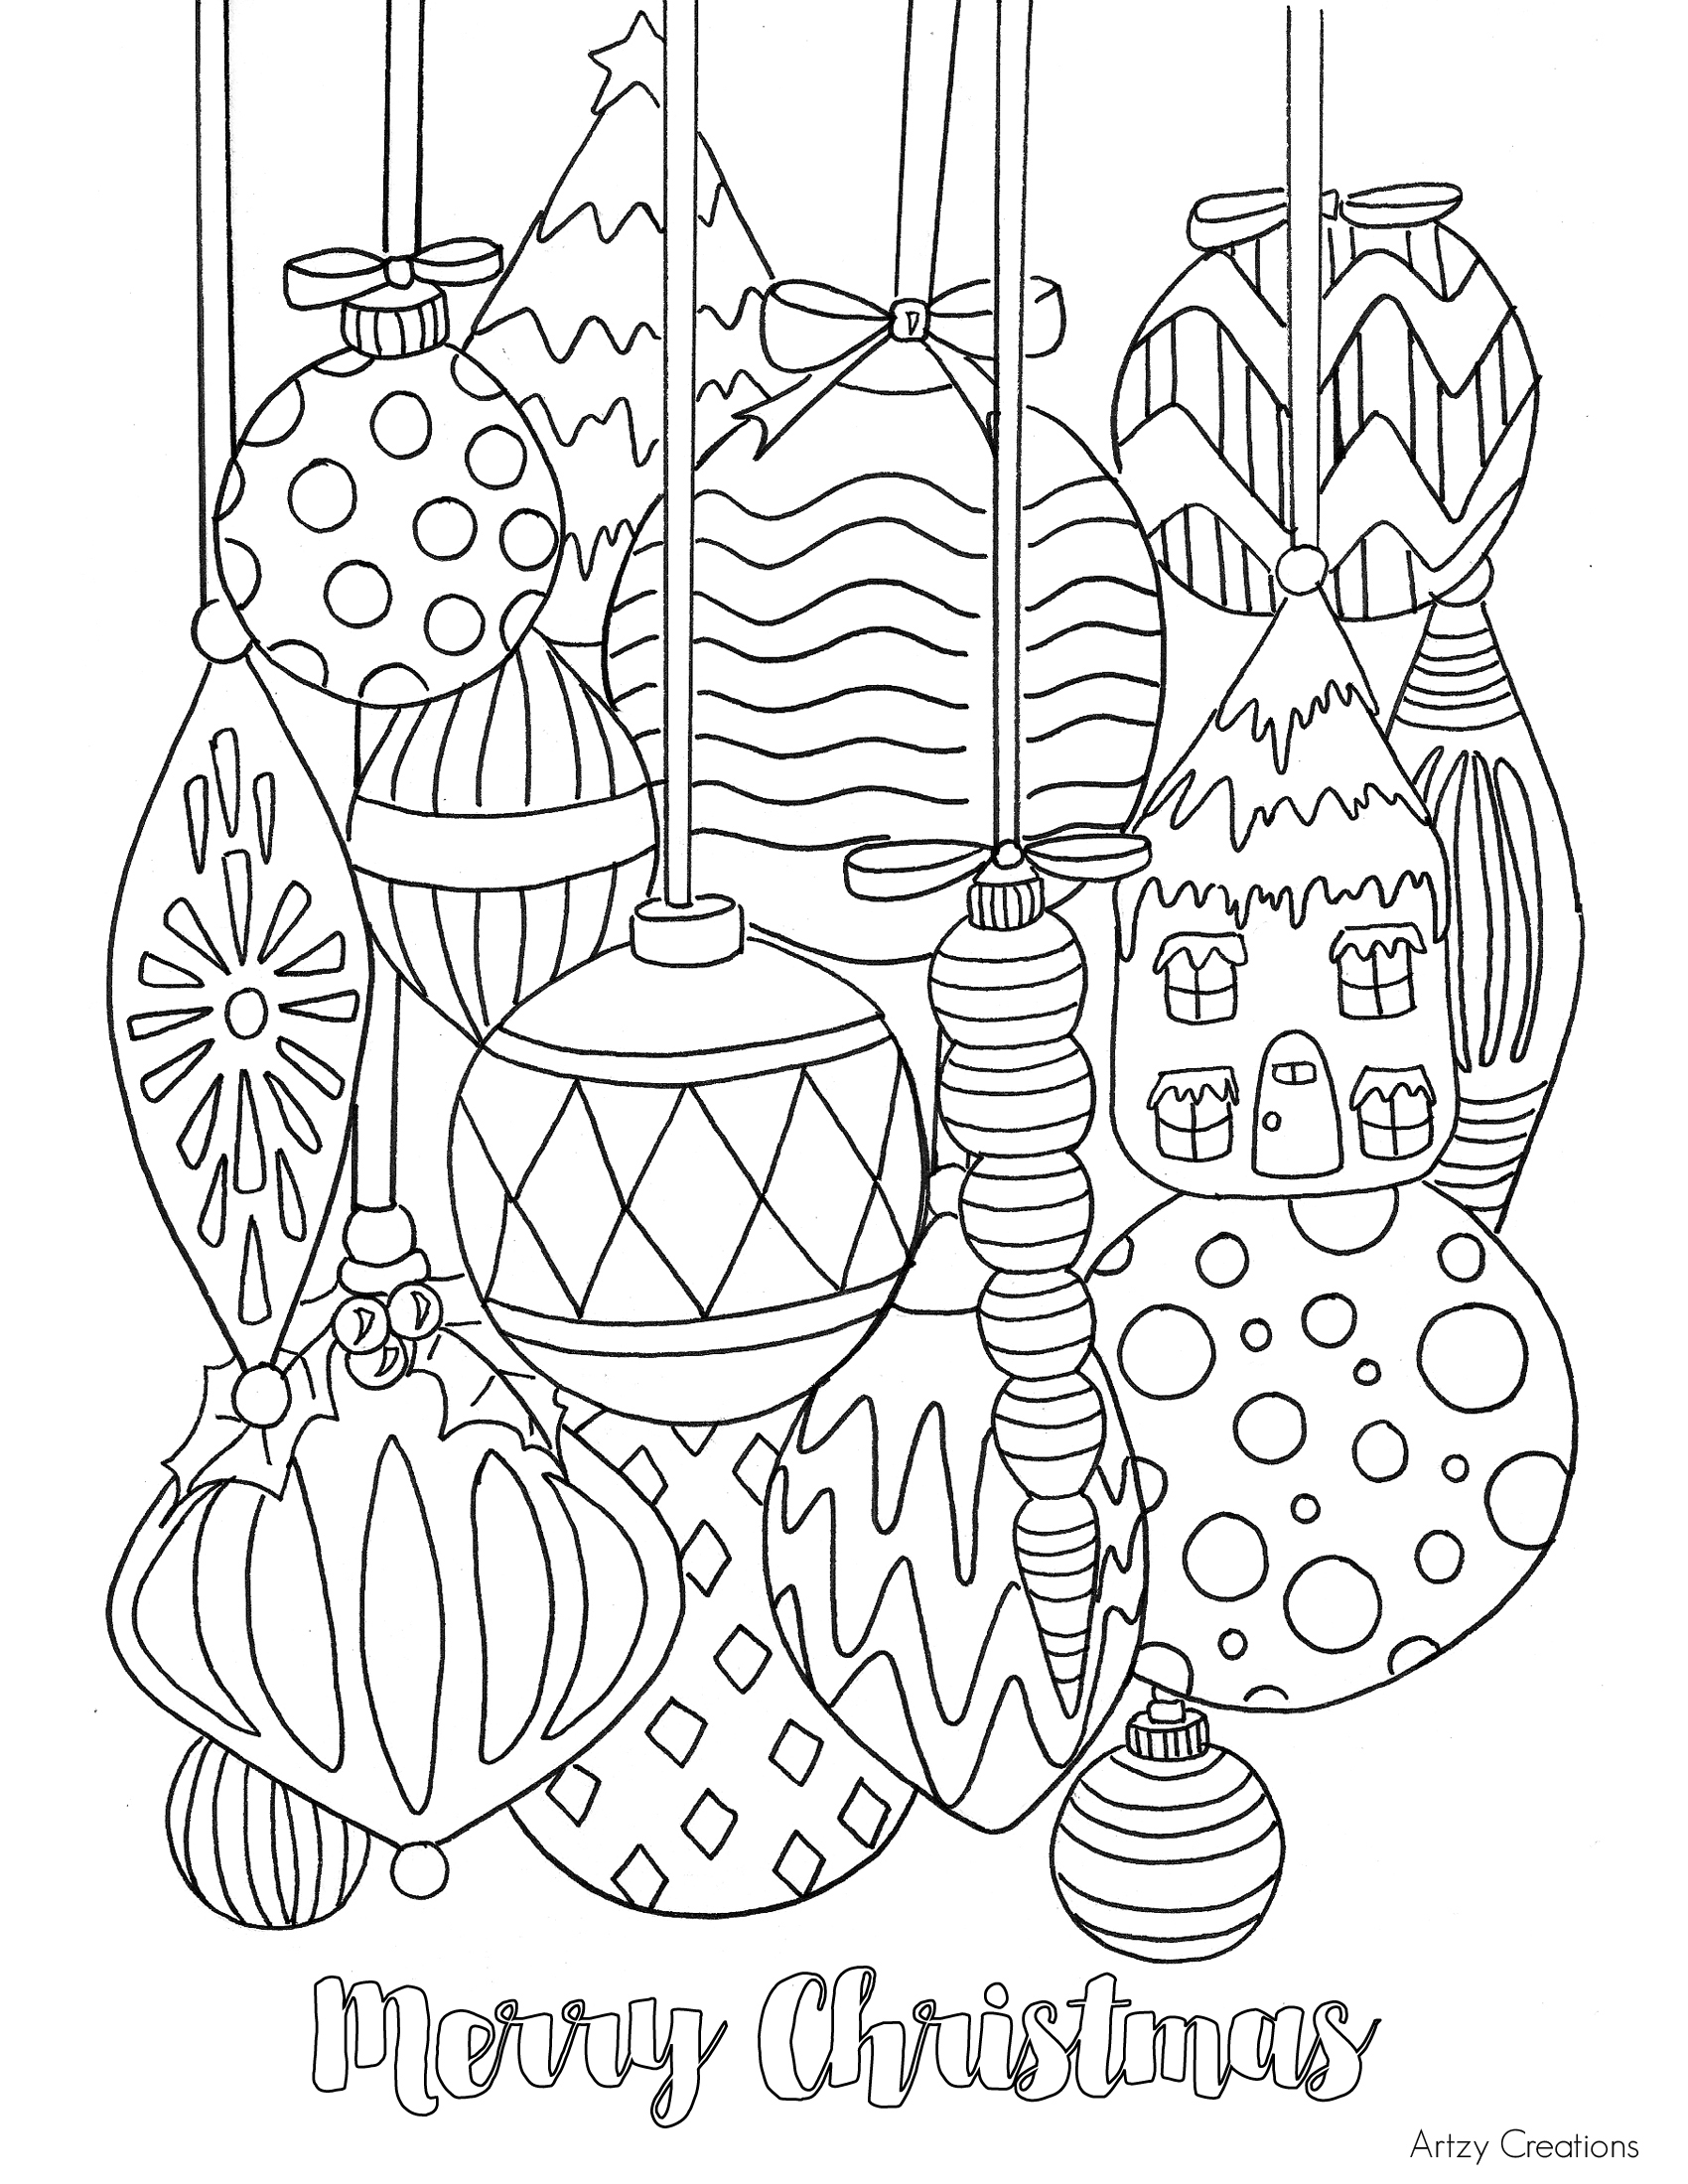 Coloring Pages With Christmas Ornaments Free Ornament Page TGIF This Grandma Is Fun